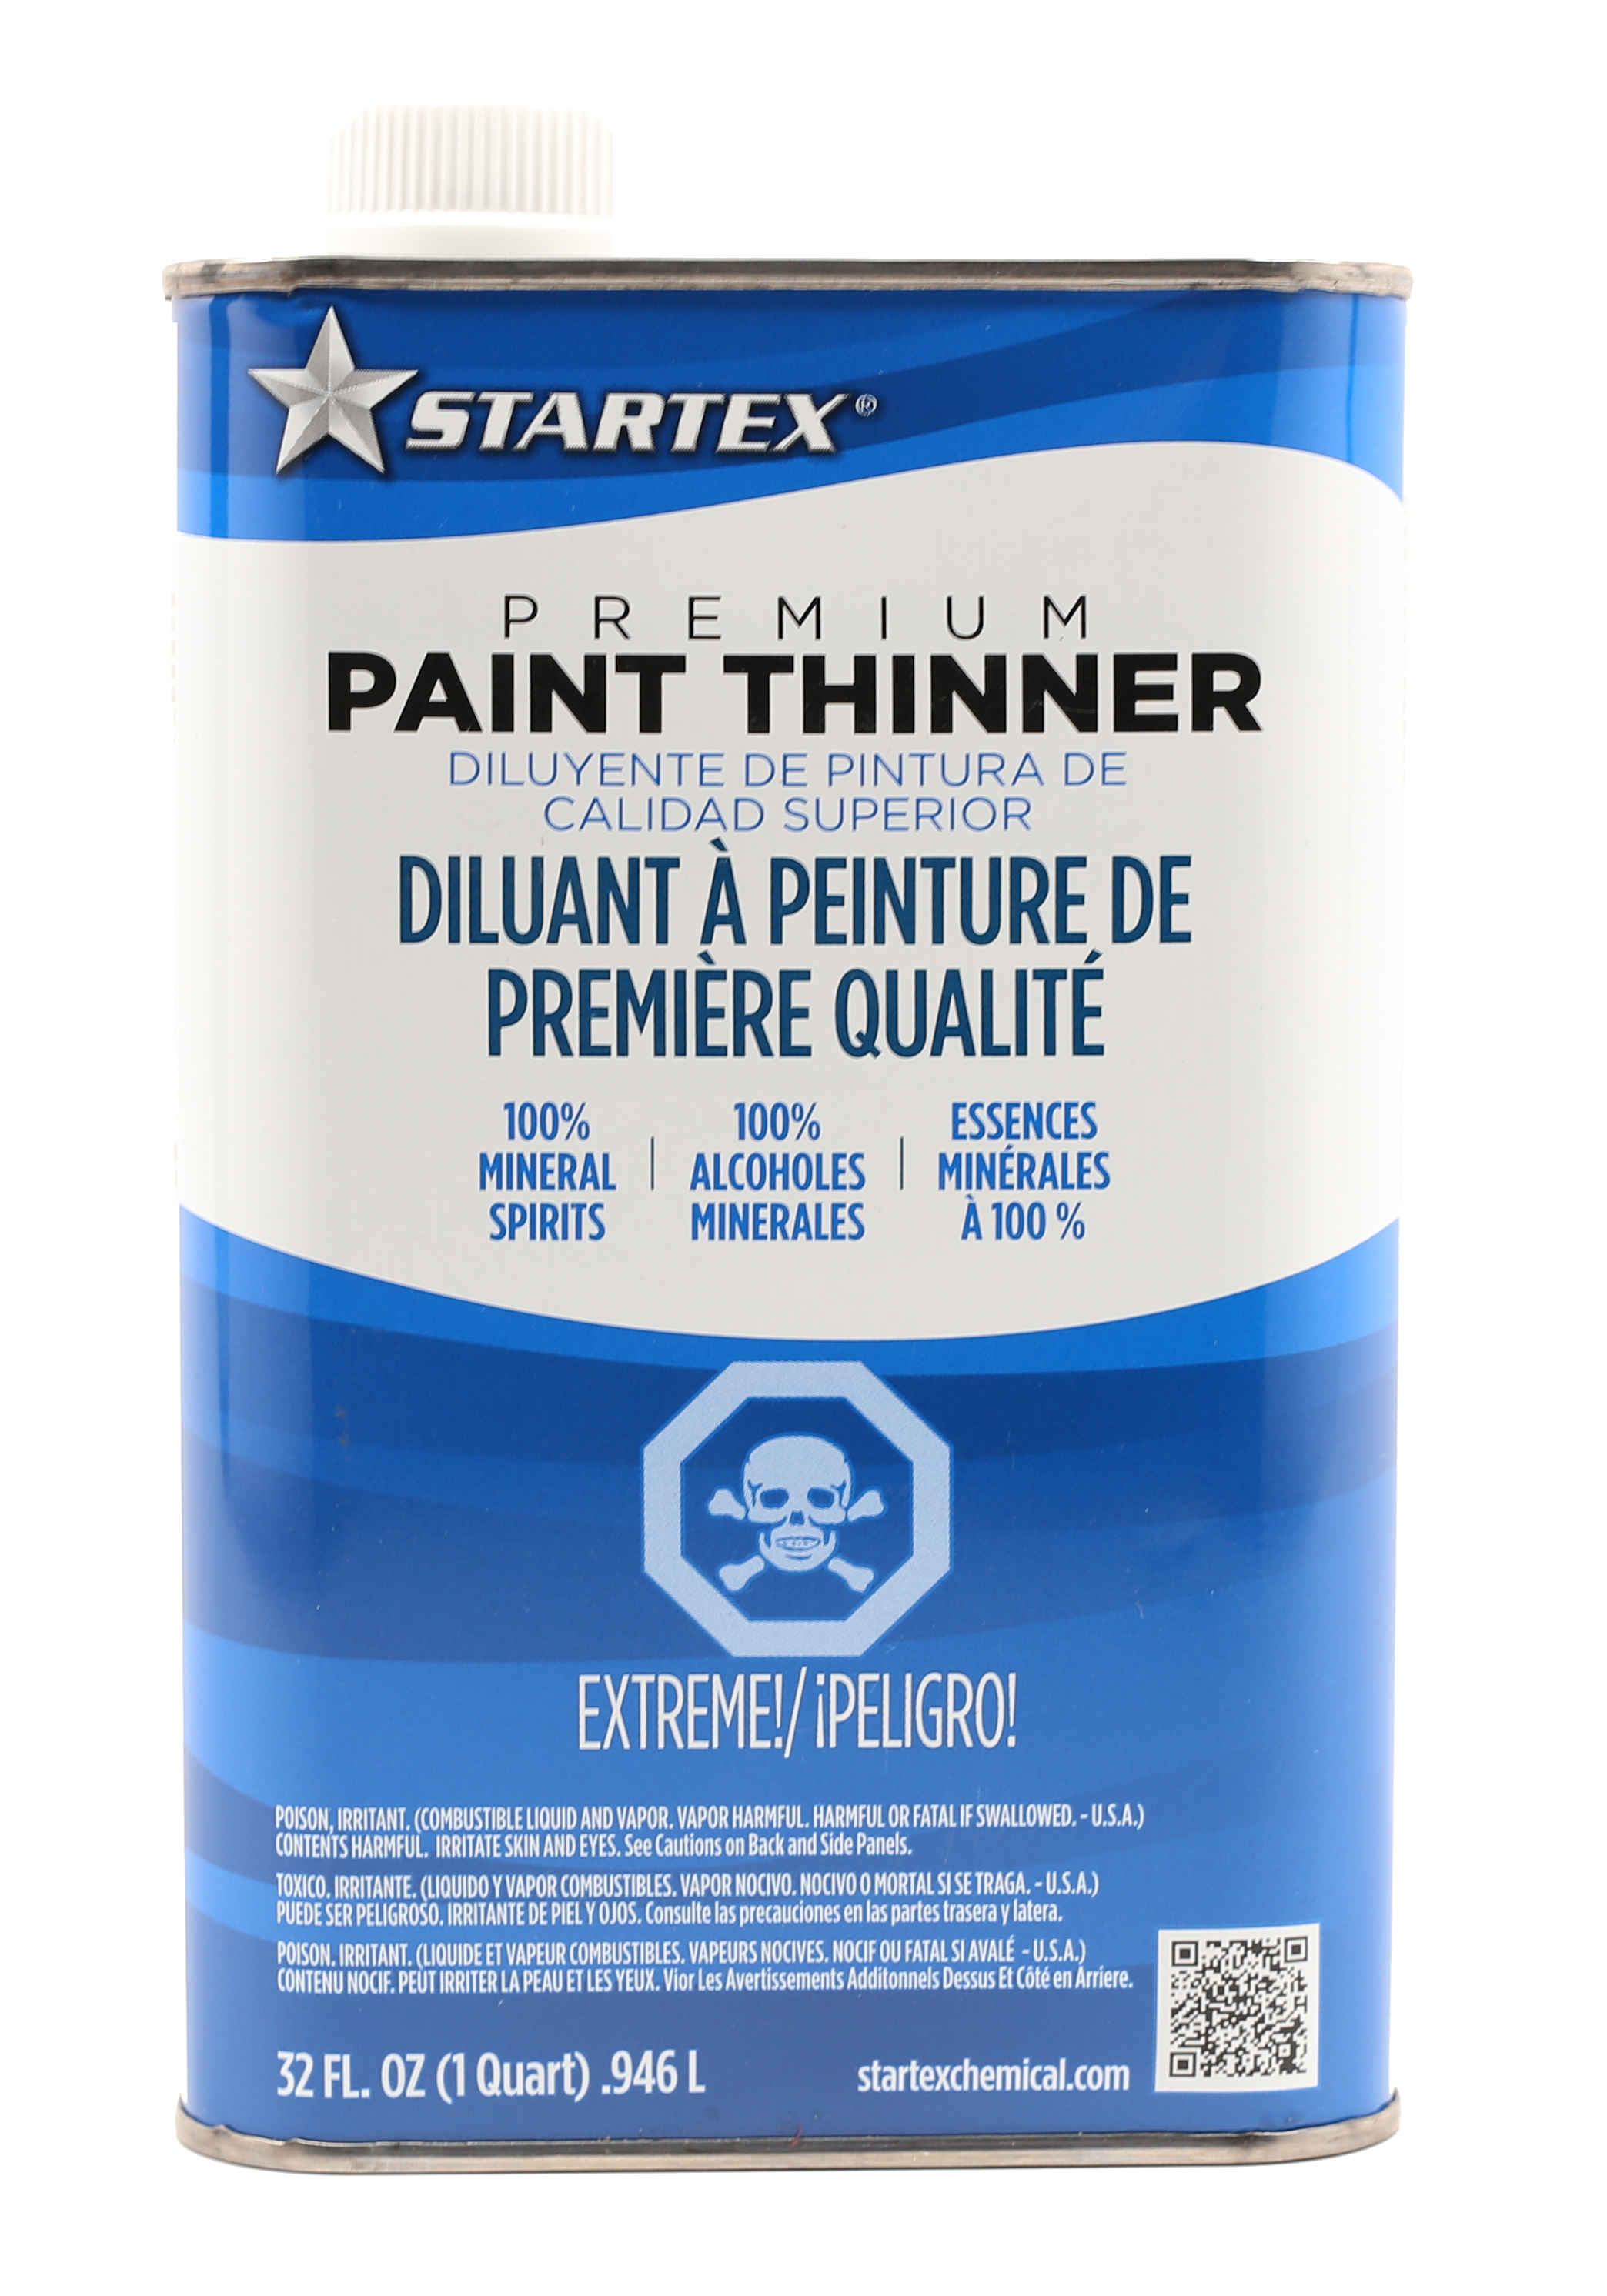 one quart paint thinner for paint application and clean up